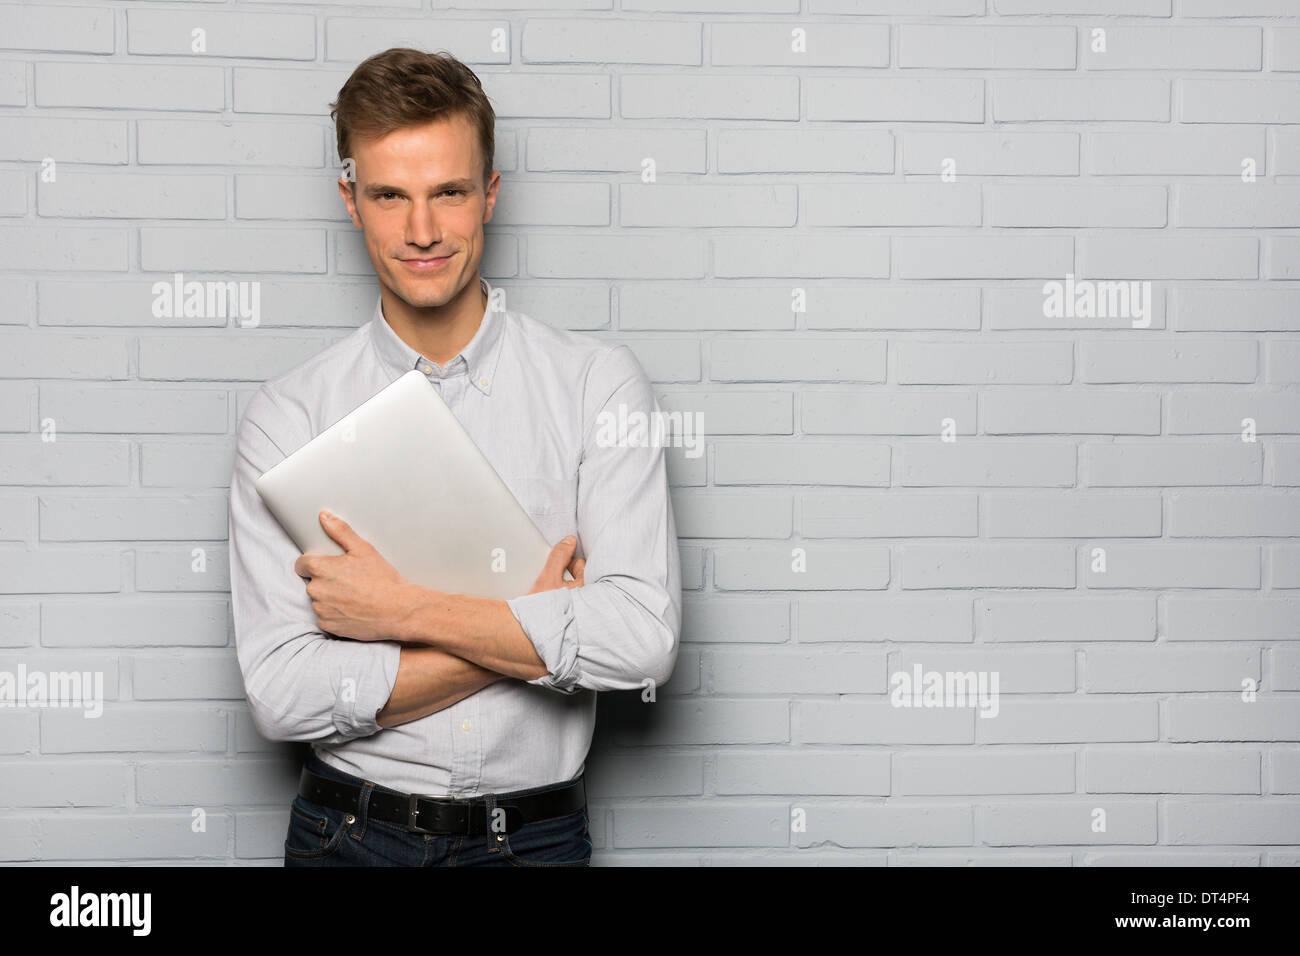 Portrait of cheerful Male holding computer, studio grey background looking camera Stock Photo